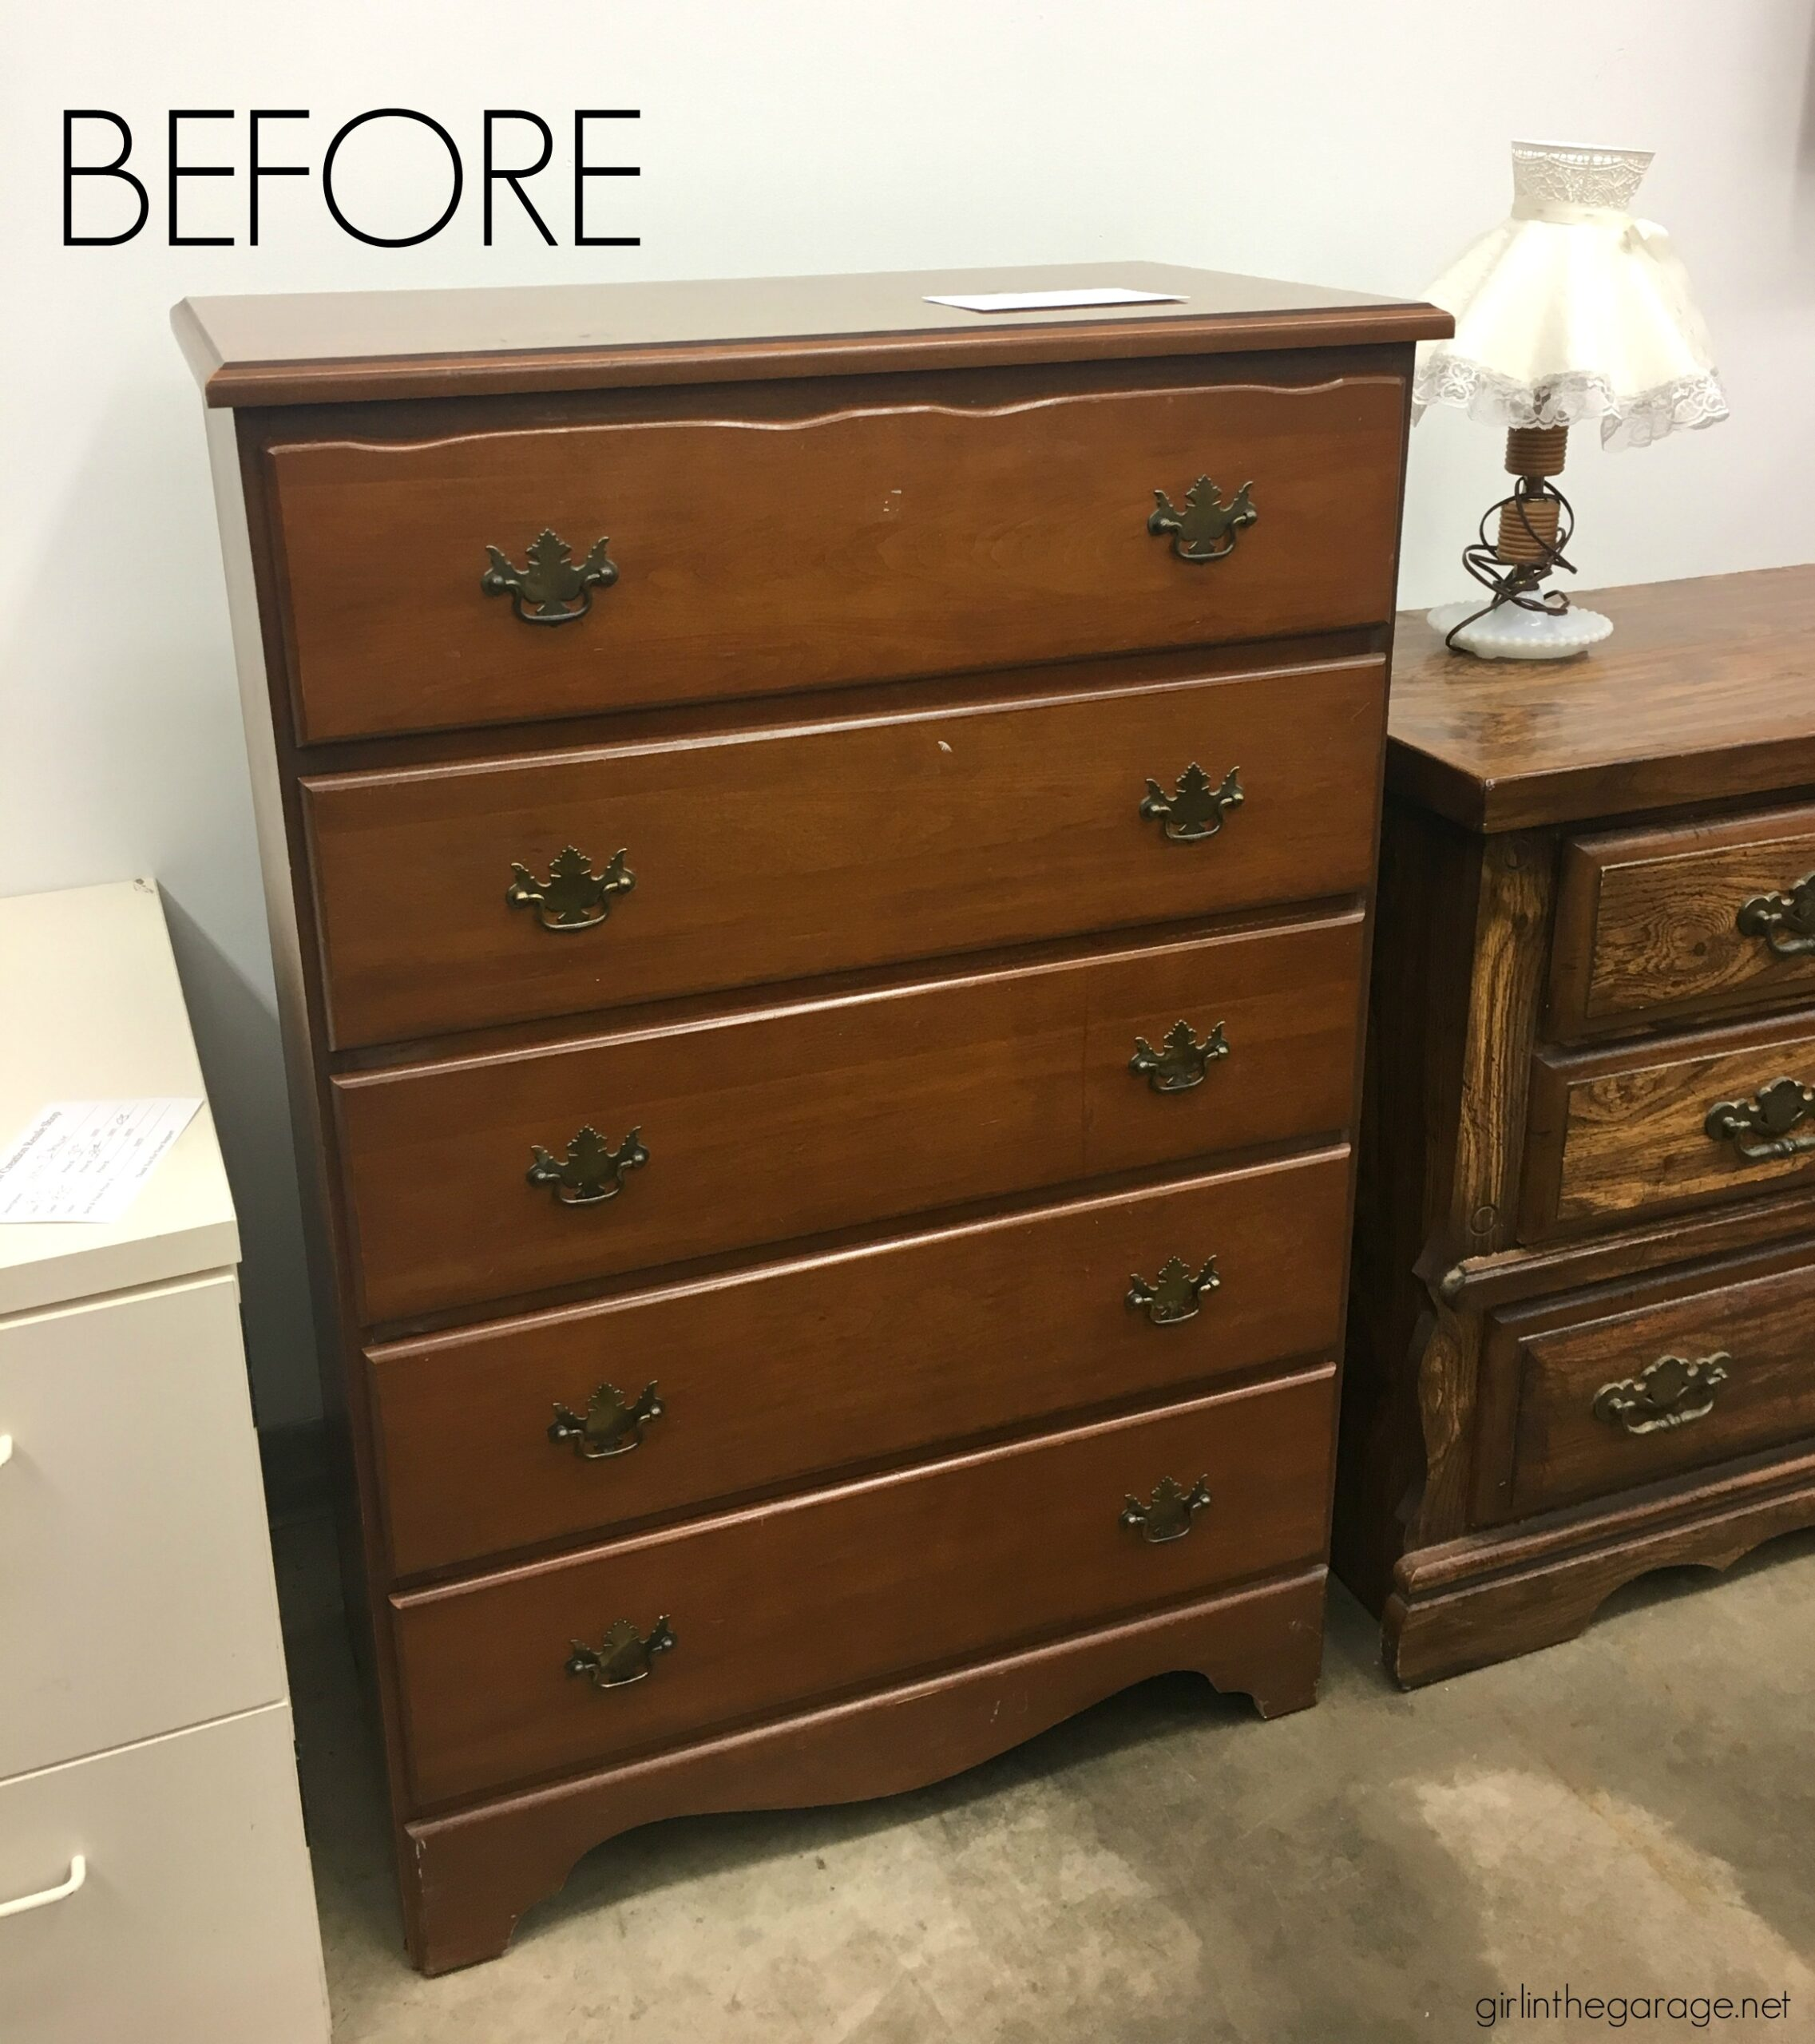 Give old furniture lots of charm with painted stripes and numbers. Learn how to easily paint stripes on a dresser with tape and a high quality Purdy paint brush. #ad DIY painted furniture ideas by Girl in the Garage